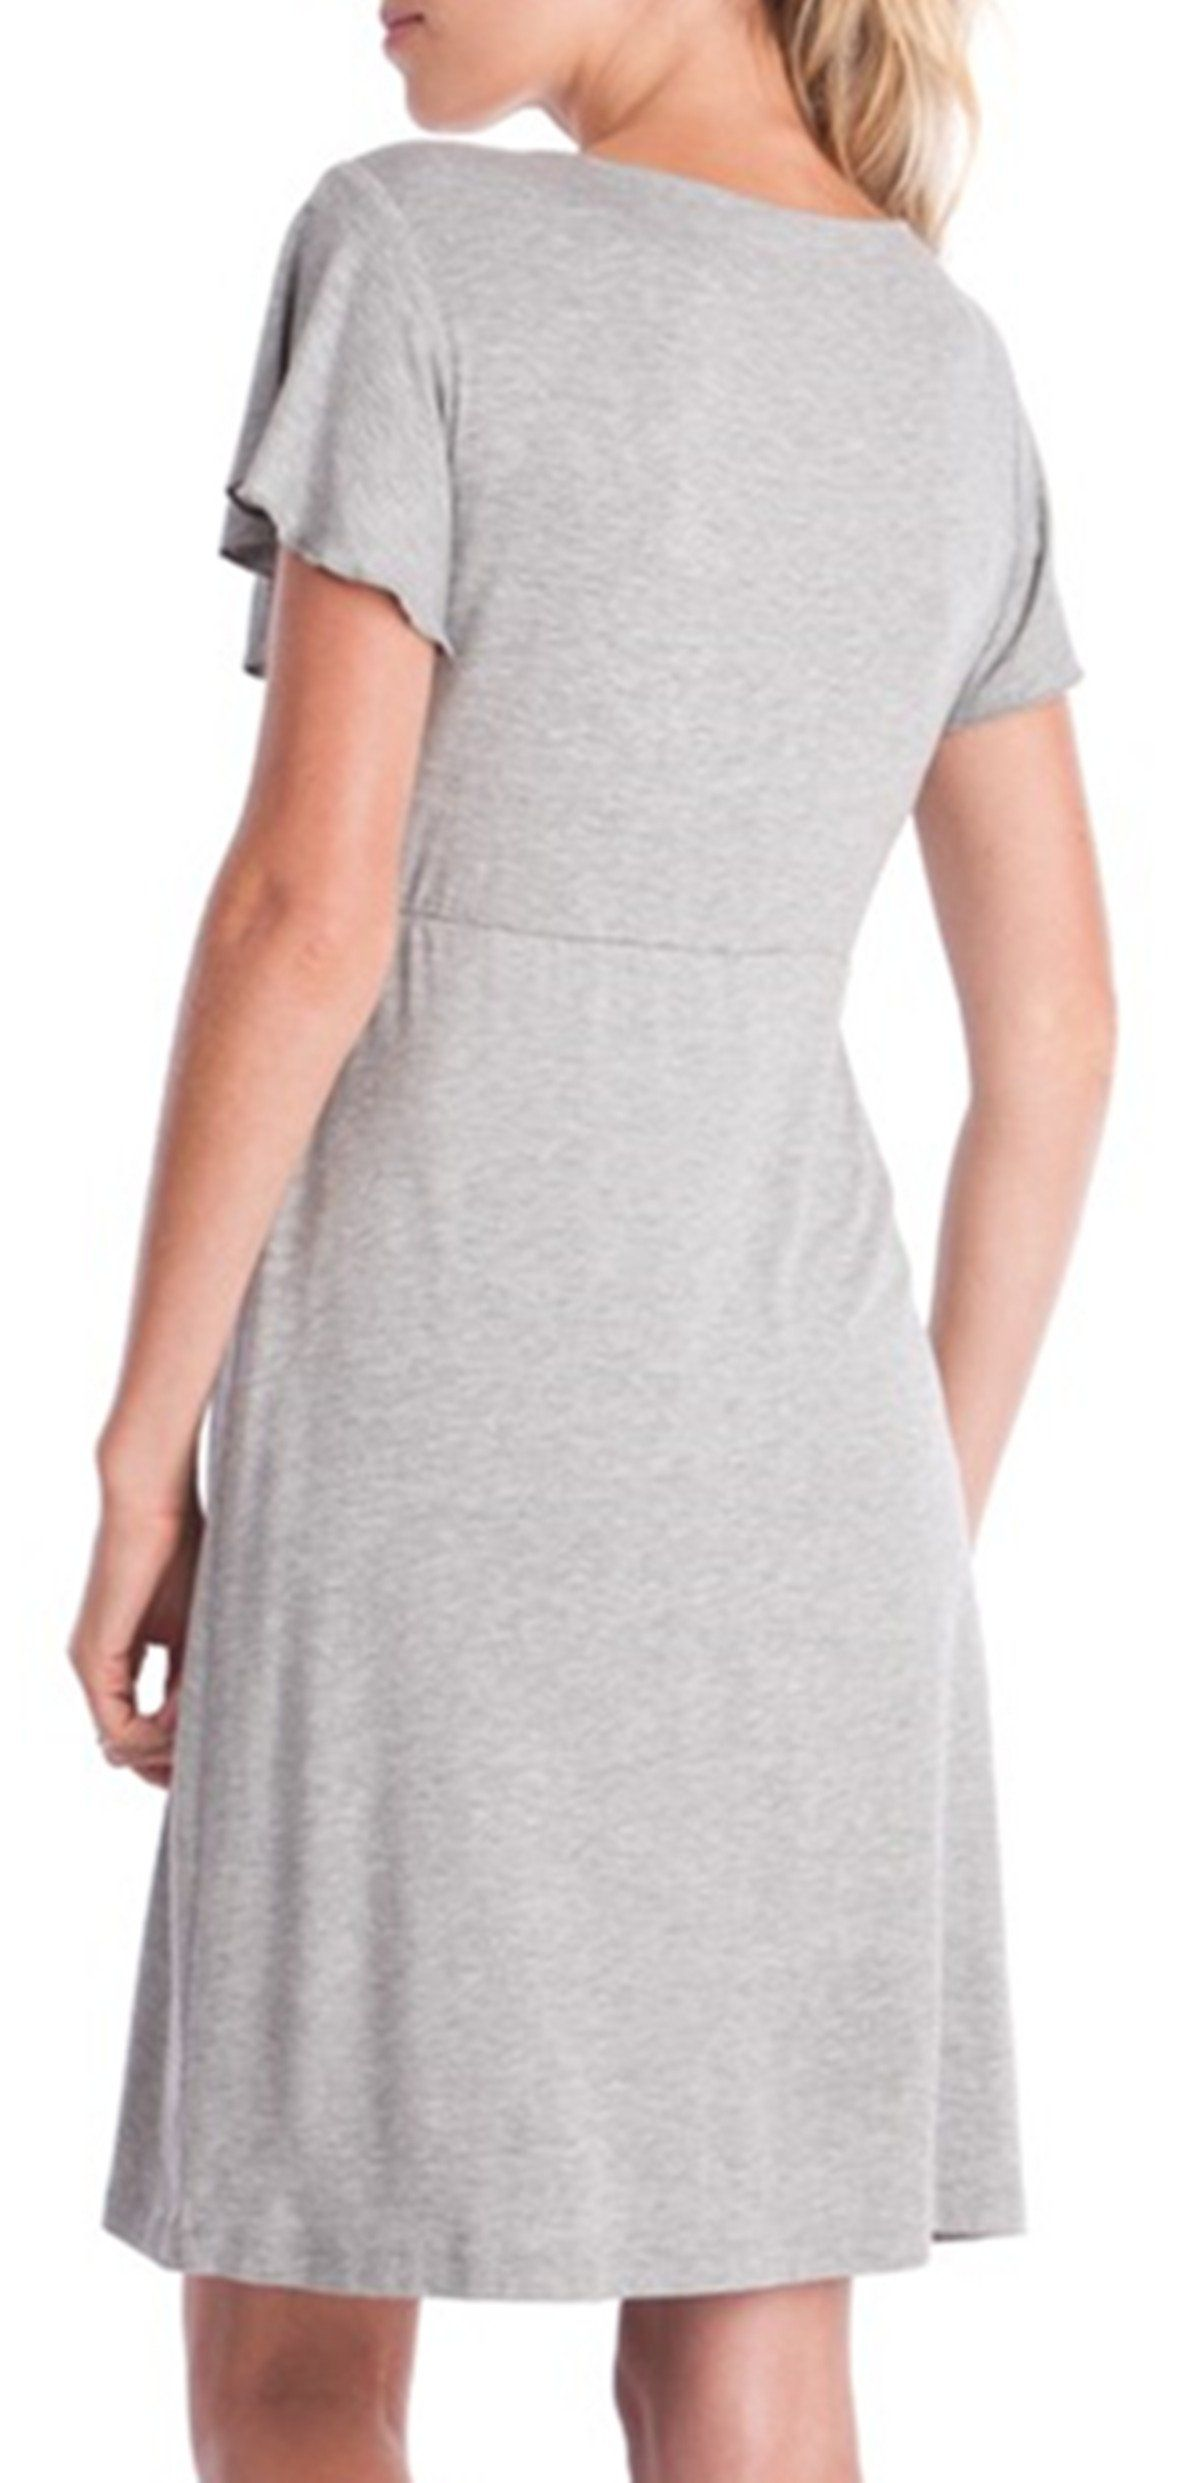 2c4721ff6c8 Maternity Styles - clingy maternity dresses   Sexymee Womens Maternity  Dress Short Sleeve Nursing Nightgown for Breastfeeding Sleepwear    To  check out ...